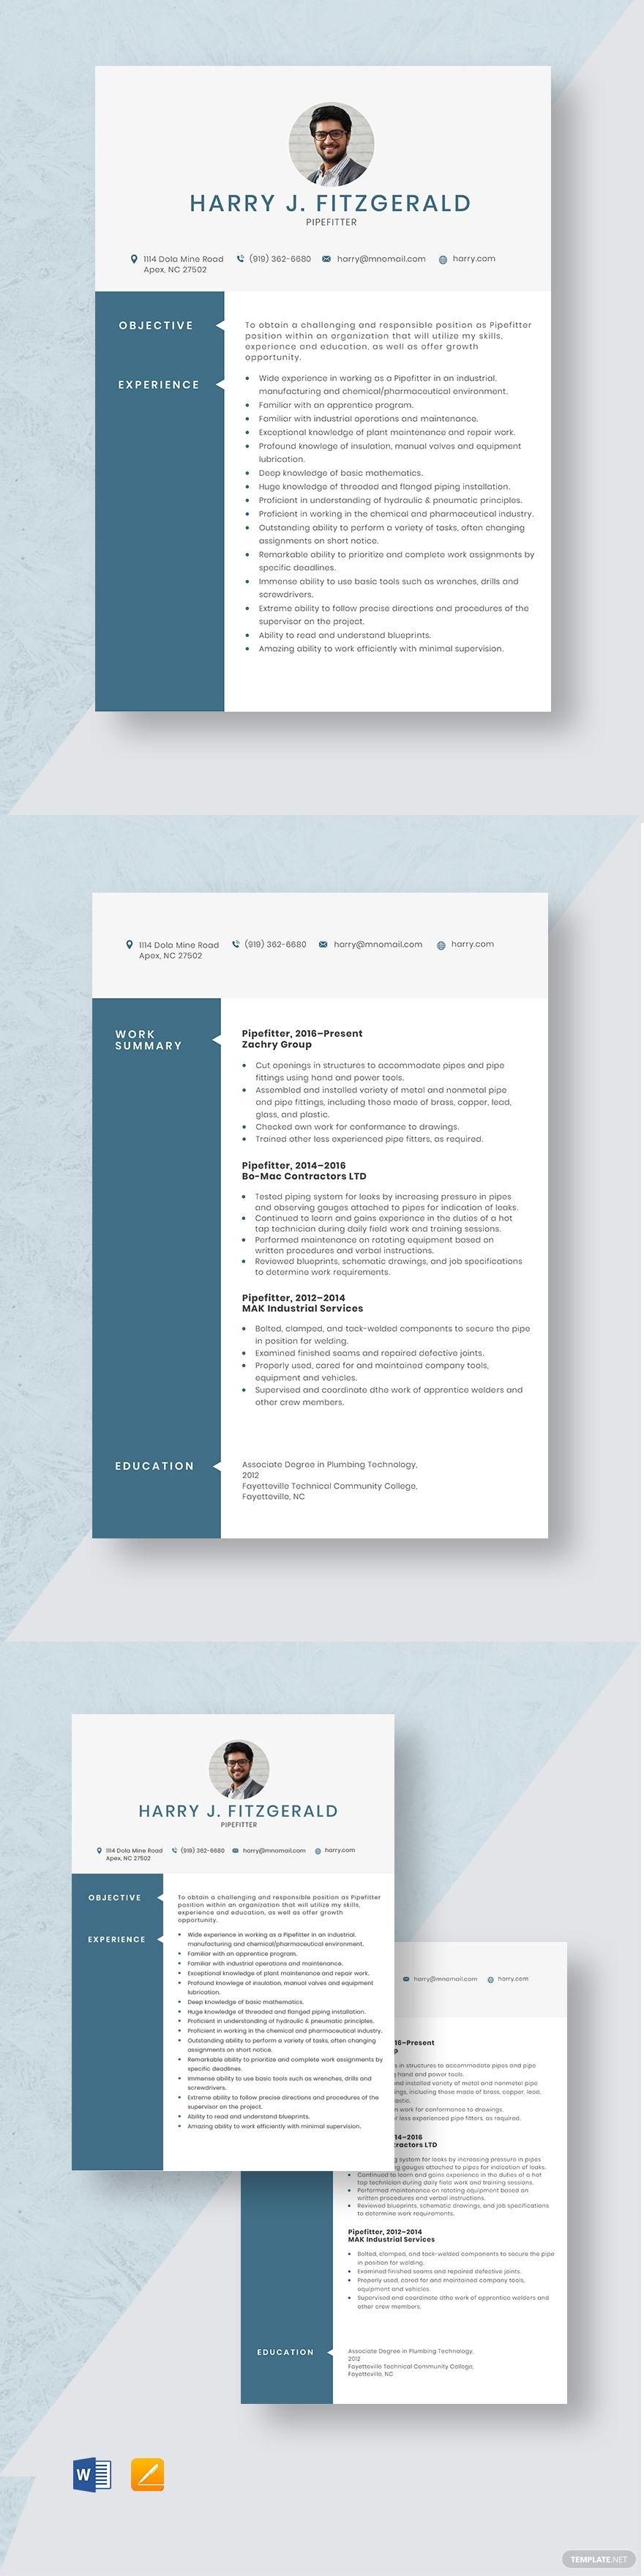 37+ Plumber pipefitter resume examples free inspirations